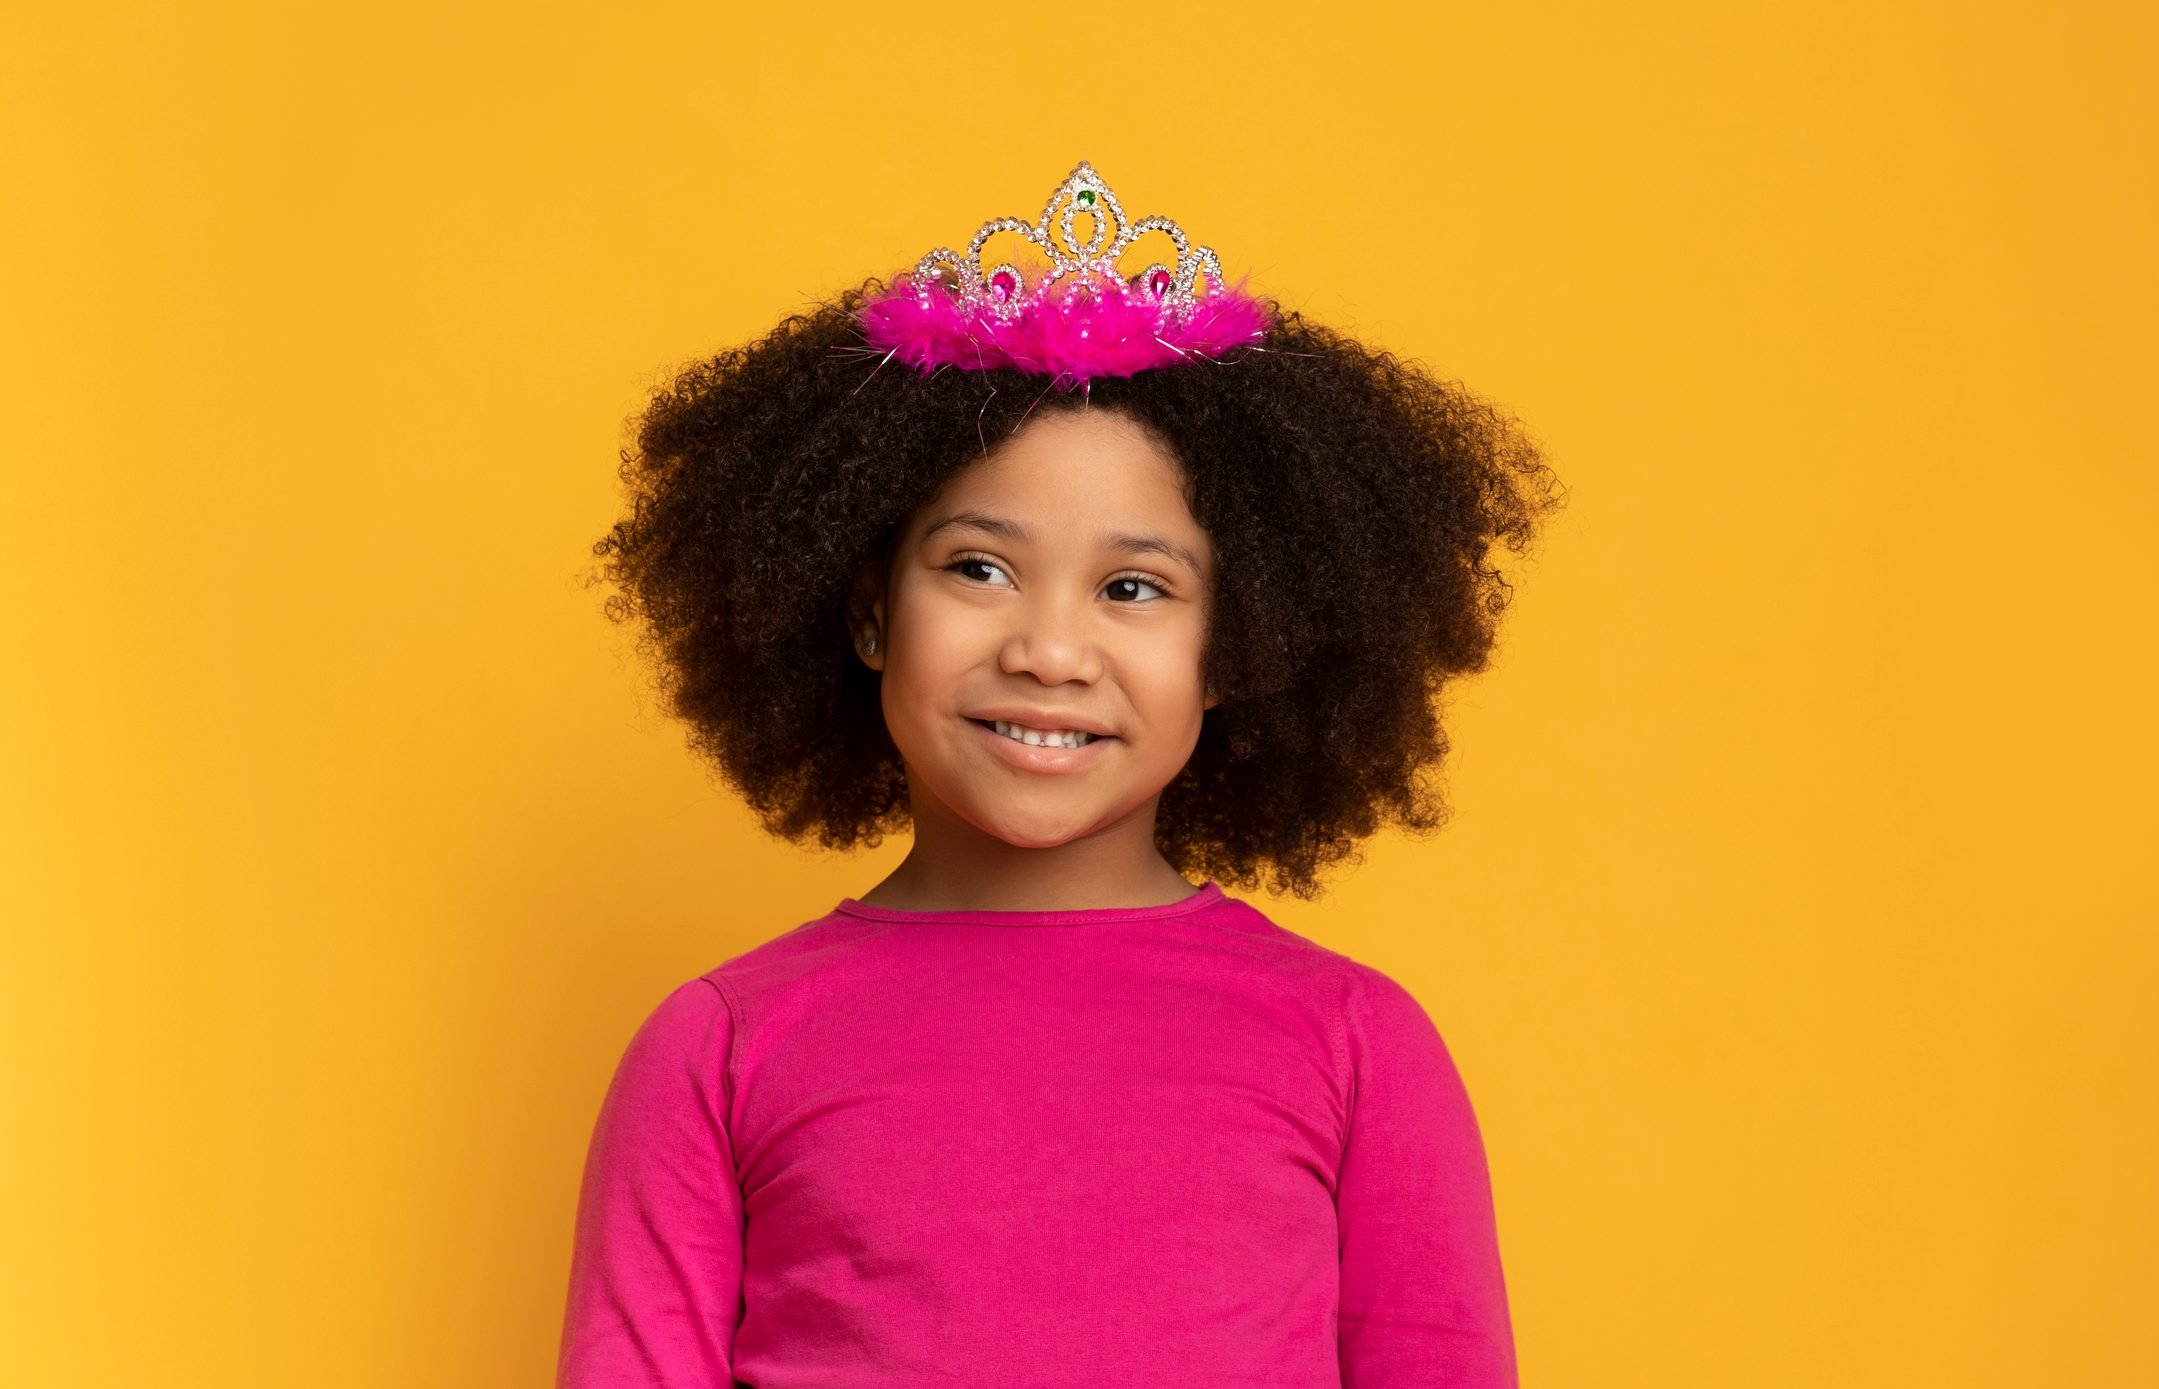 Portrait of charming little african american girl wearing princess crown